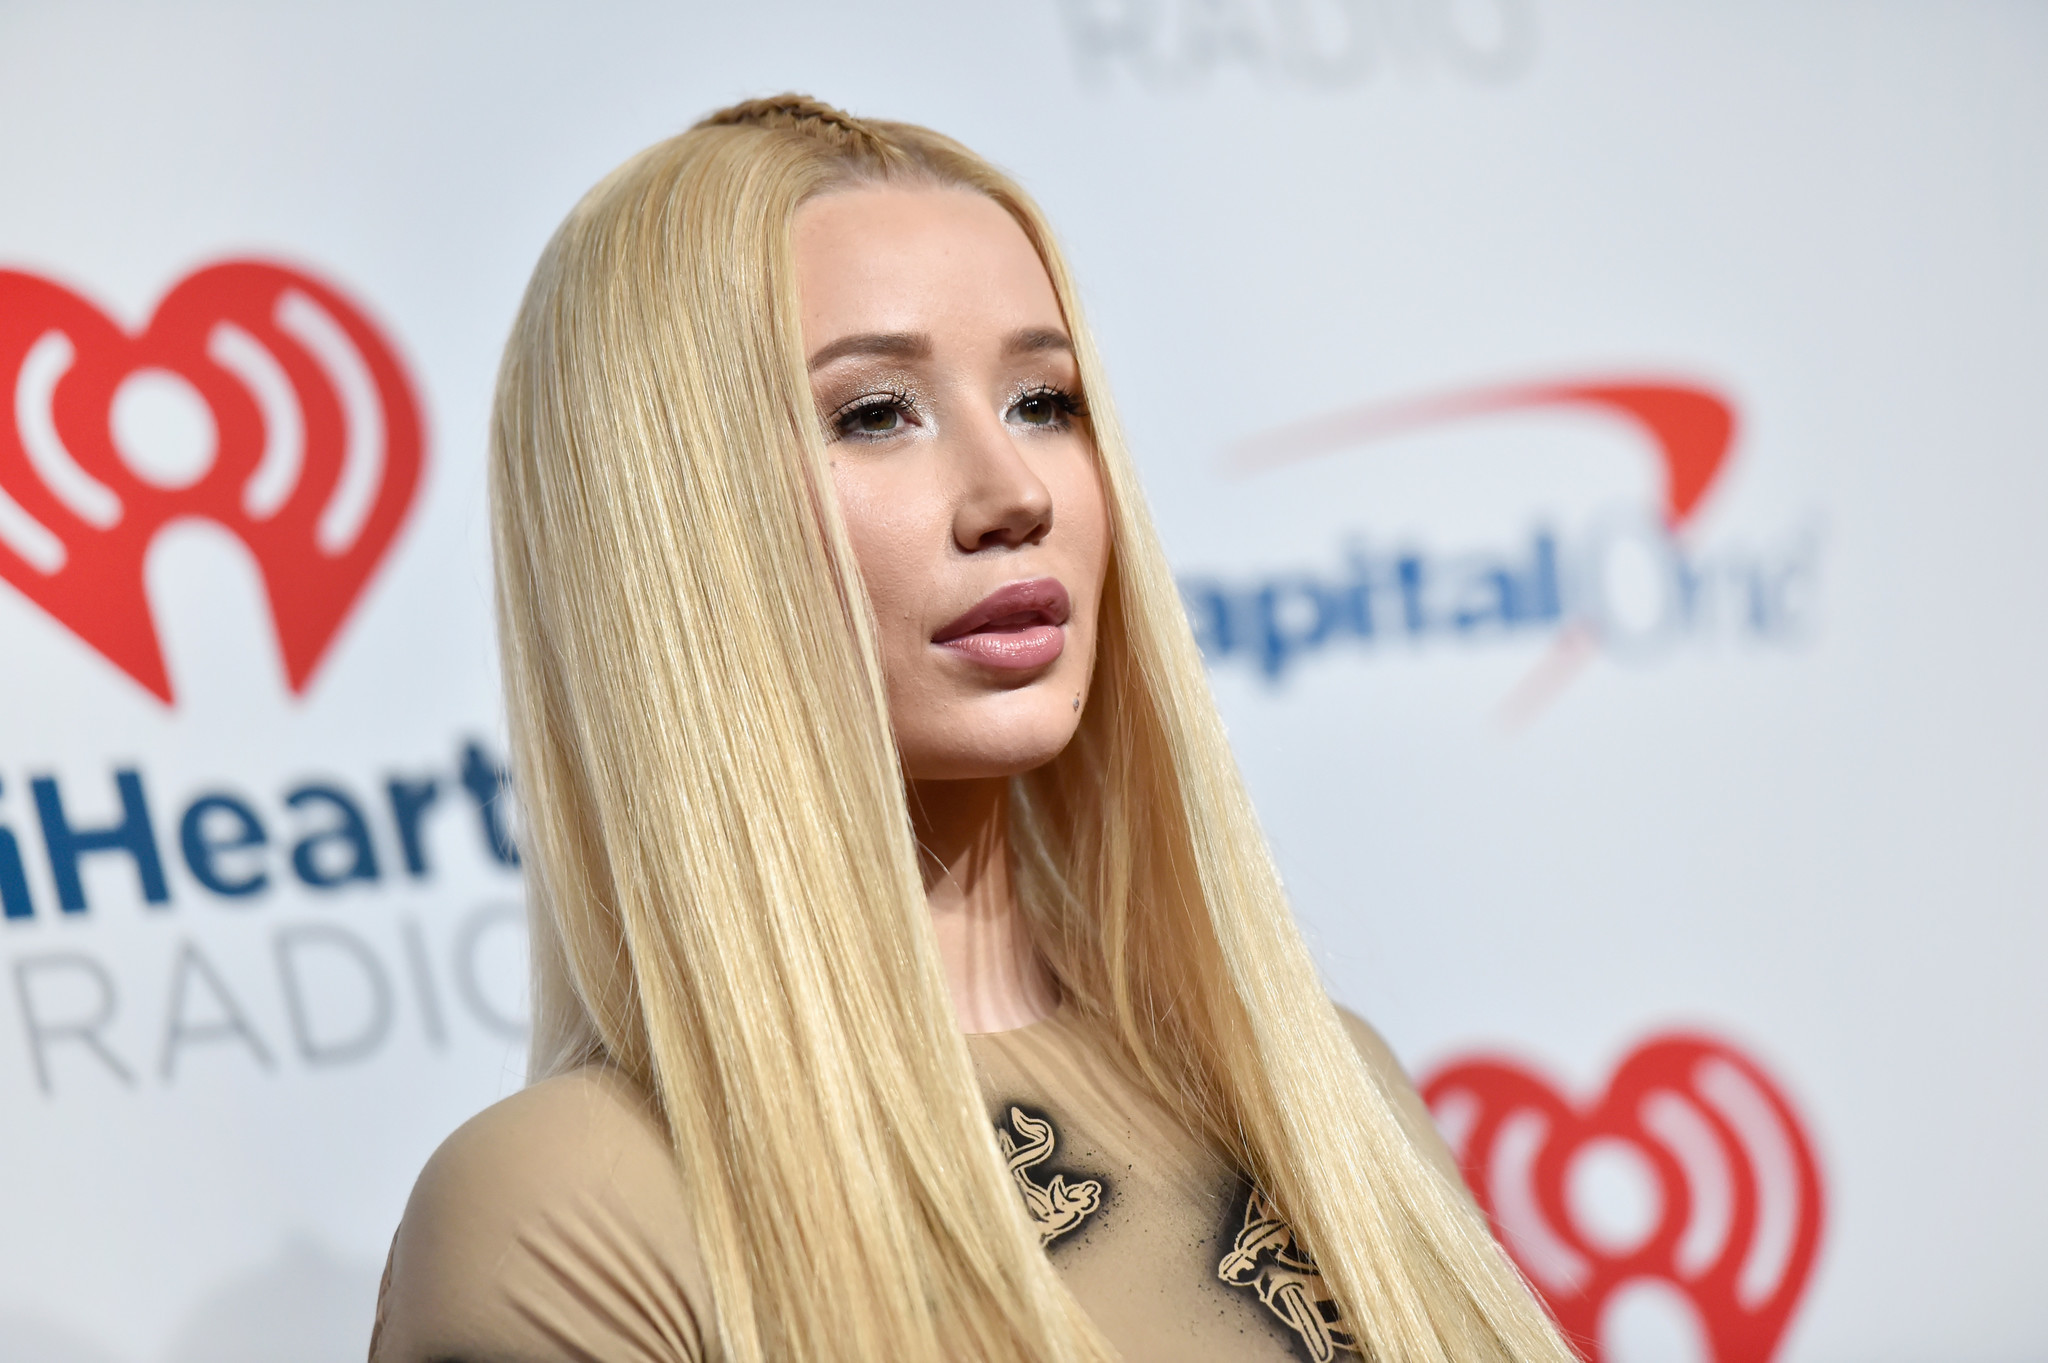 Iggy Azalea and boyfriend Playboi Carti report $366,00 in jewelry stolen from Atlanta rental home